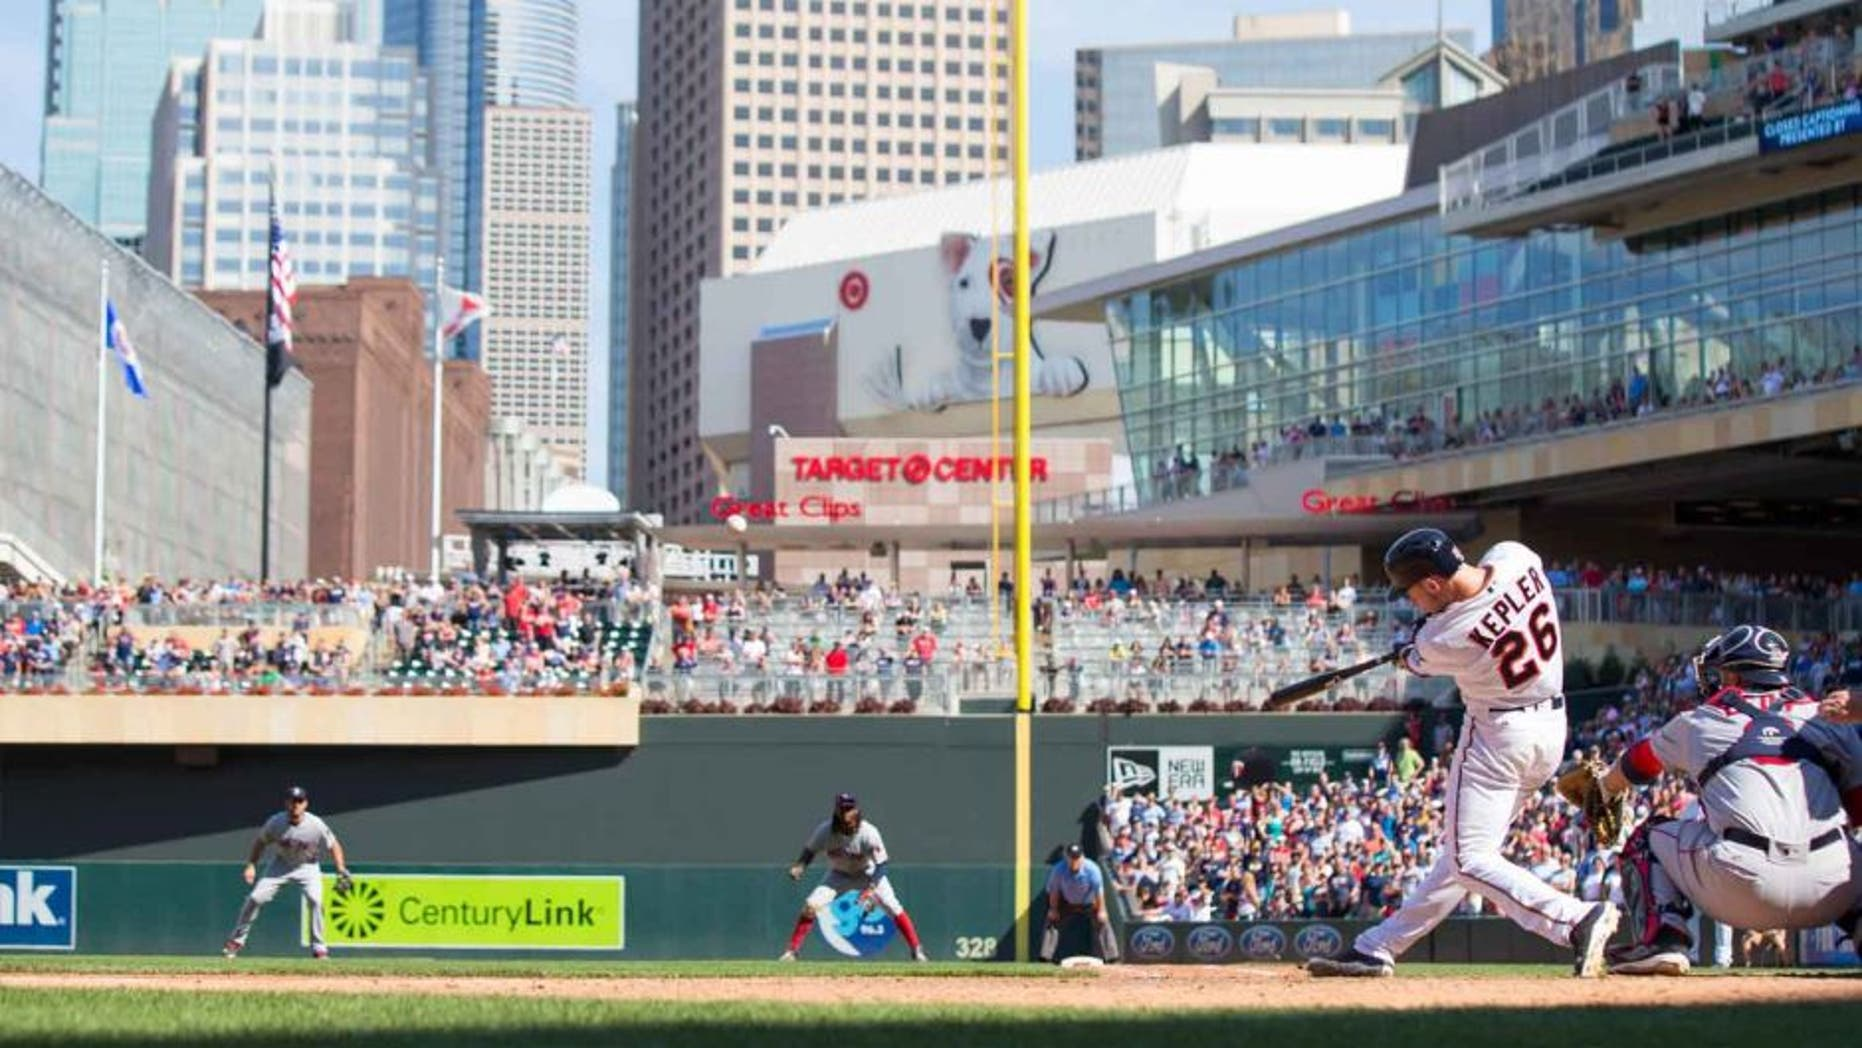 Sunday, June 12, 2016: Minnesota Twins outfielder Max Kepler hits a three-run walkoff home run in the 10th inning against the Boston Red Sox at Target Field. It was his first major league home run.